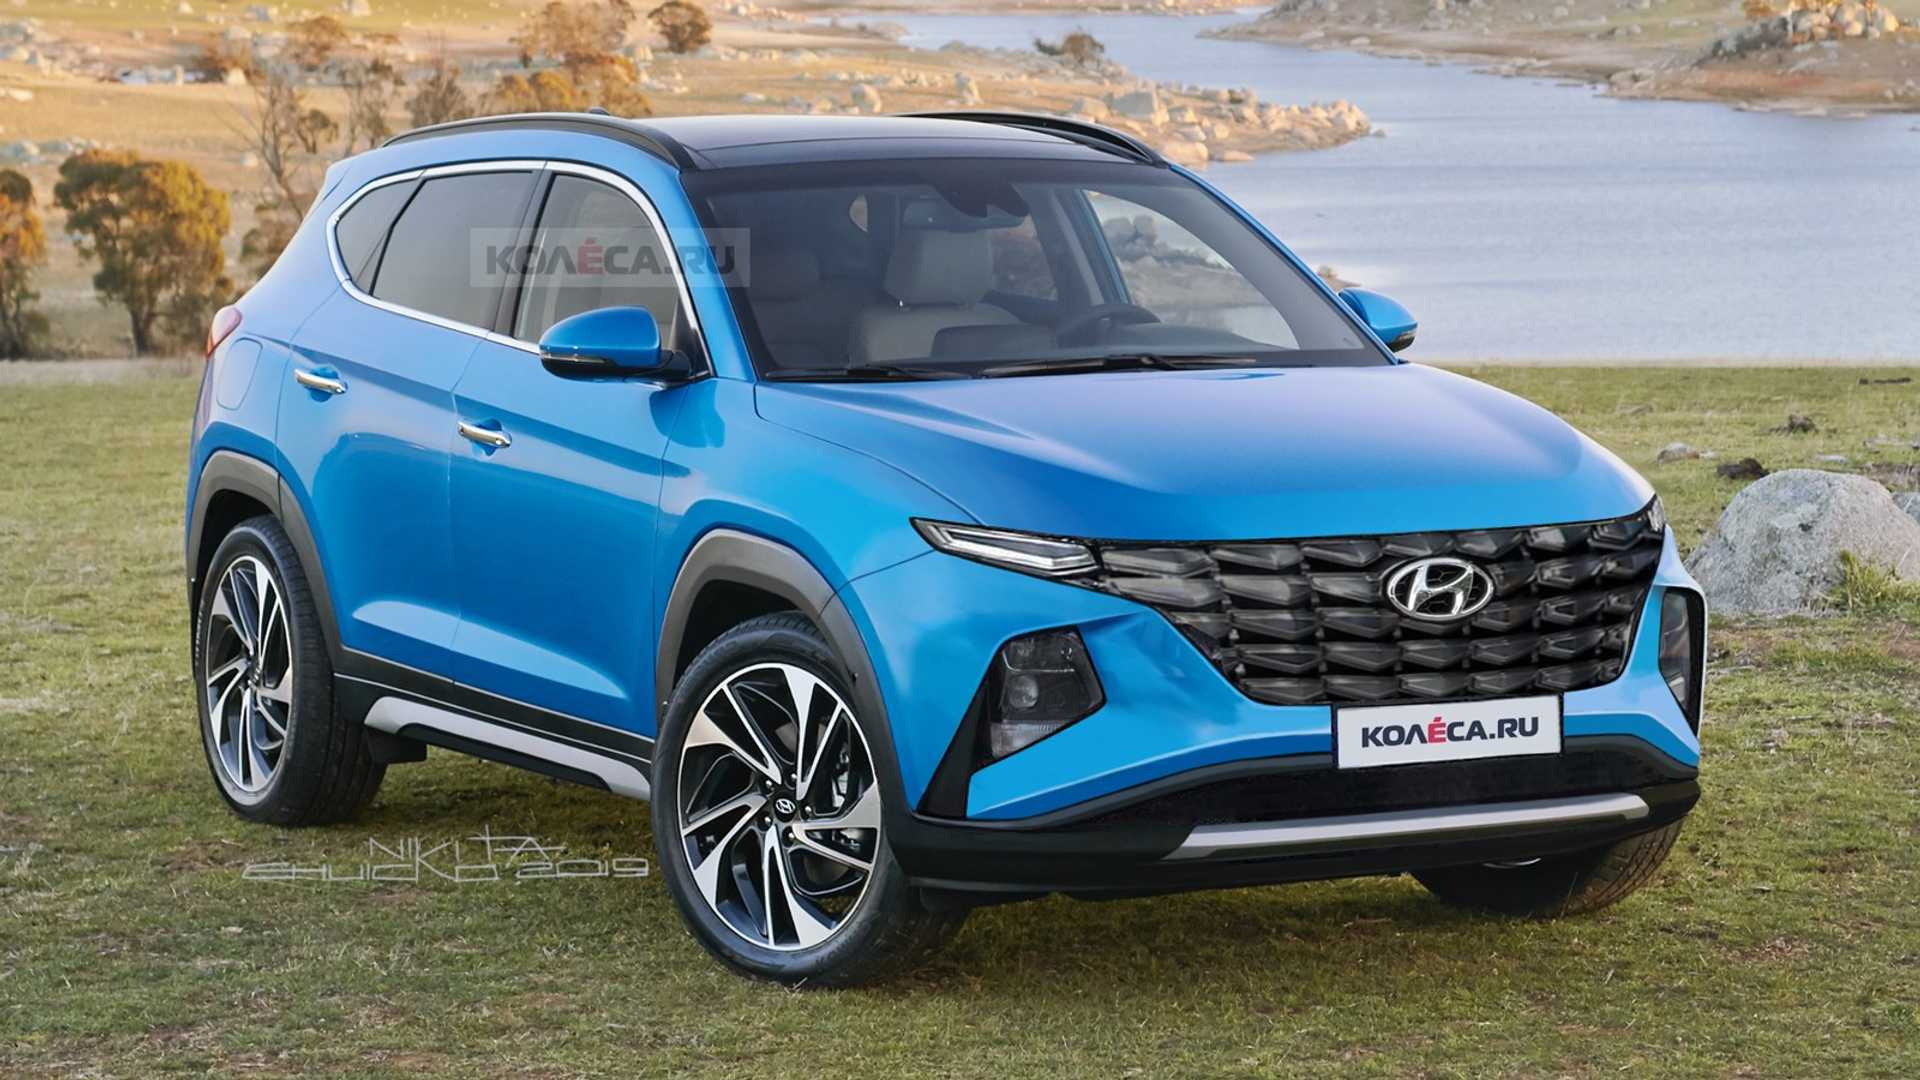 Best 2021 Crossover Suv 2021 New Models Guide: 30 Cars, Trucks, And SUVs Coming Soon